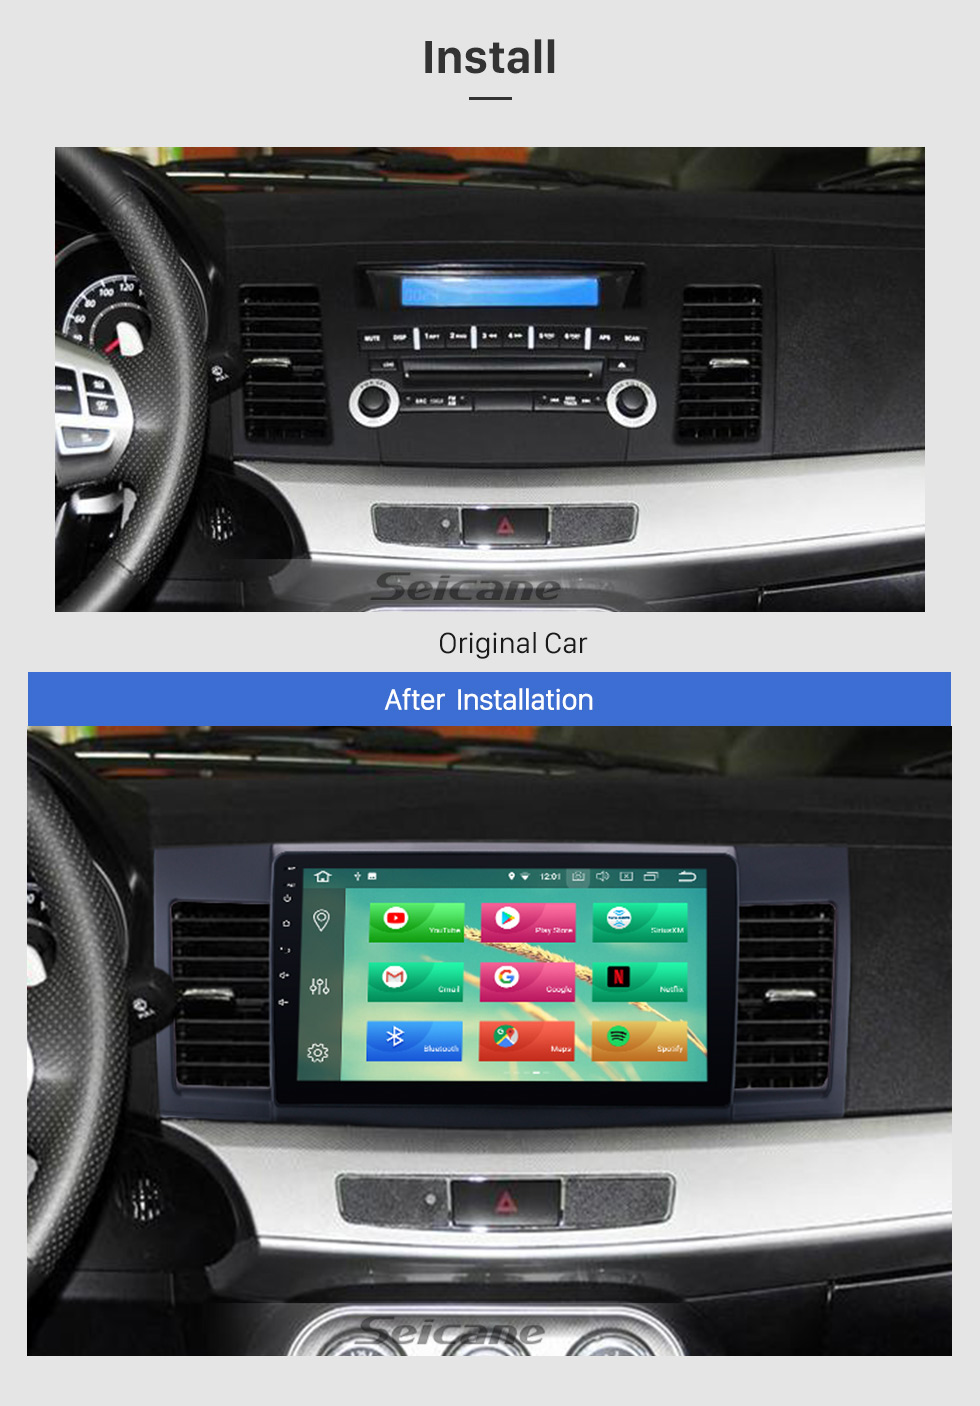 Seicane 2007-2015 Mitsubishi LANCER Android 8.0 Radio DVD player GPS navigation system Bluetooth HD 1024*600 touch screen Mirror link OBD2 DVR Rearview camera TV 1080P Video 3G WIFI Steering Wheel Control USB